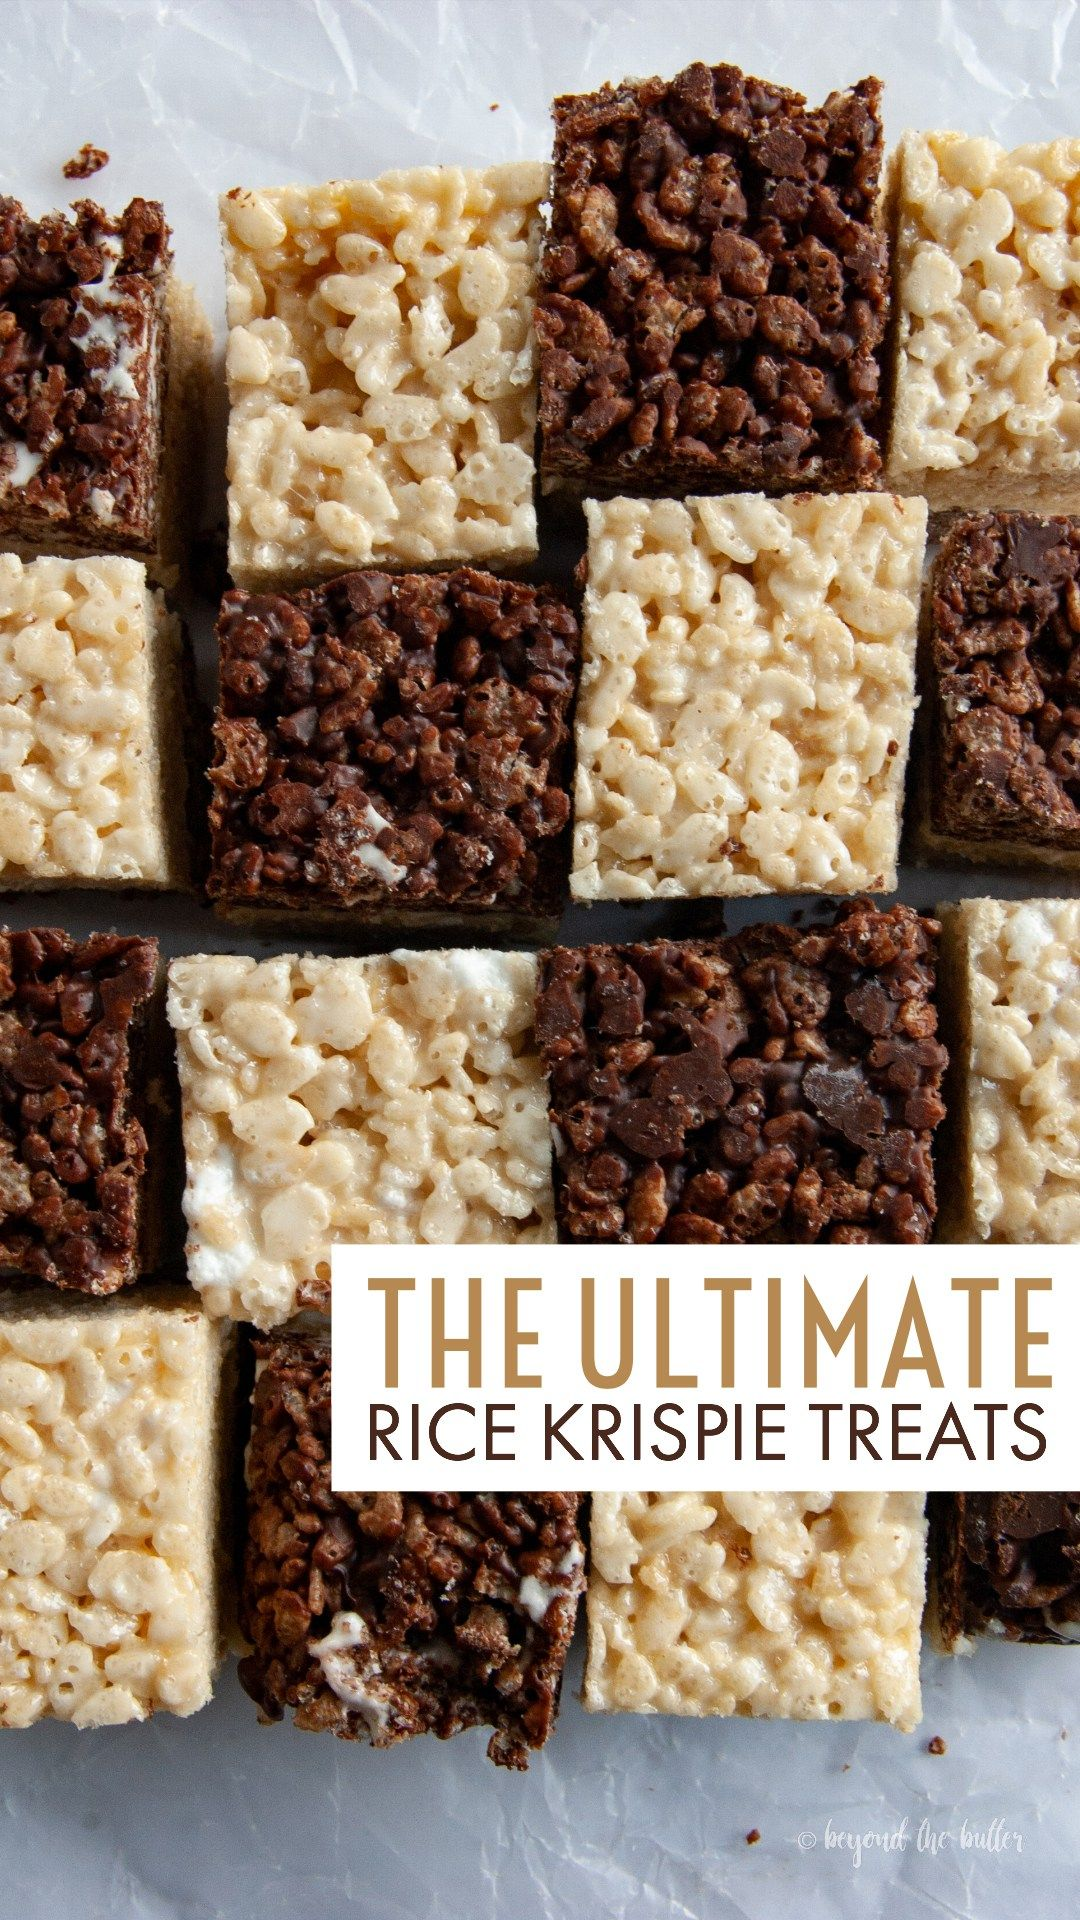 The Ultimate Rice Krispie Treats  Beyond The Butter